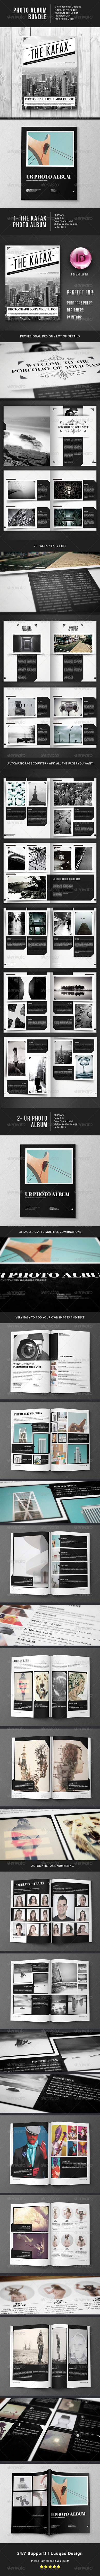 GraphicRiver Photo Album Bundle 7440228